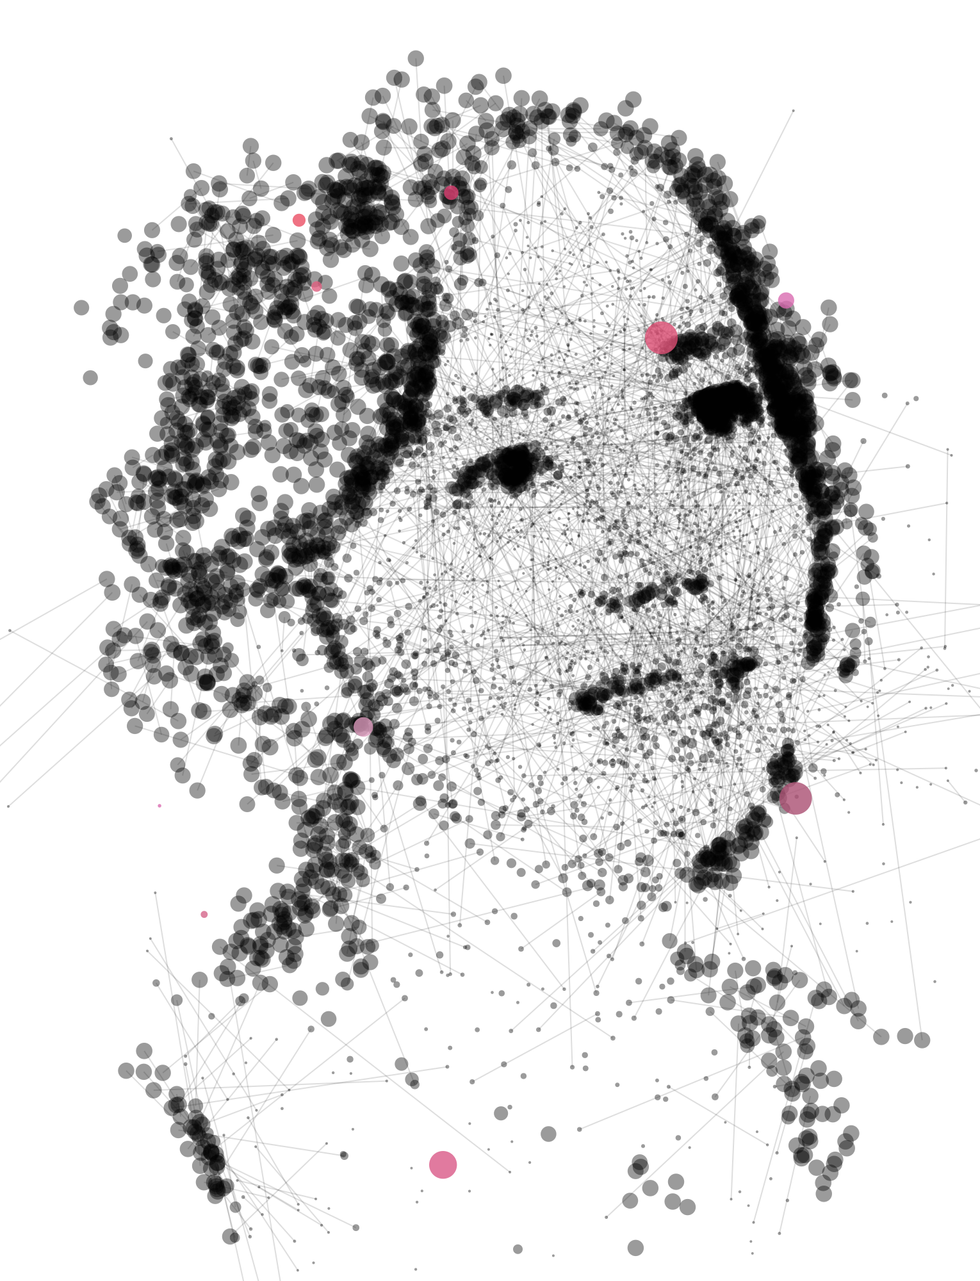 Illustration of Fei-Fei Li made of dots and lines.